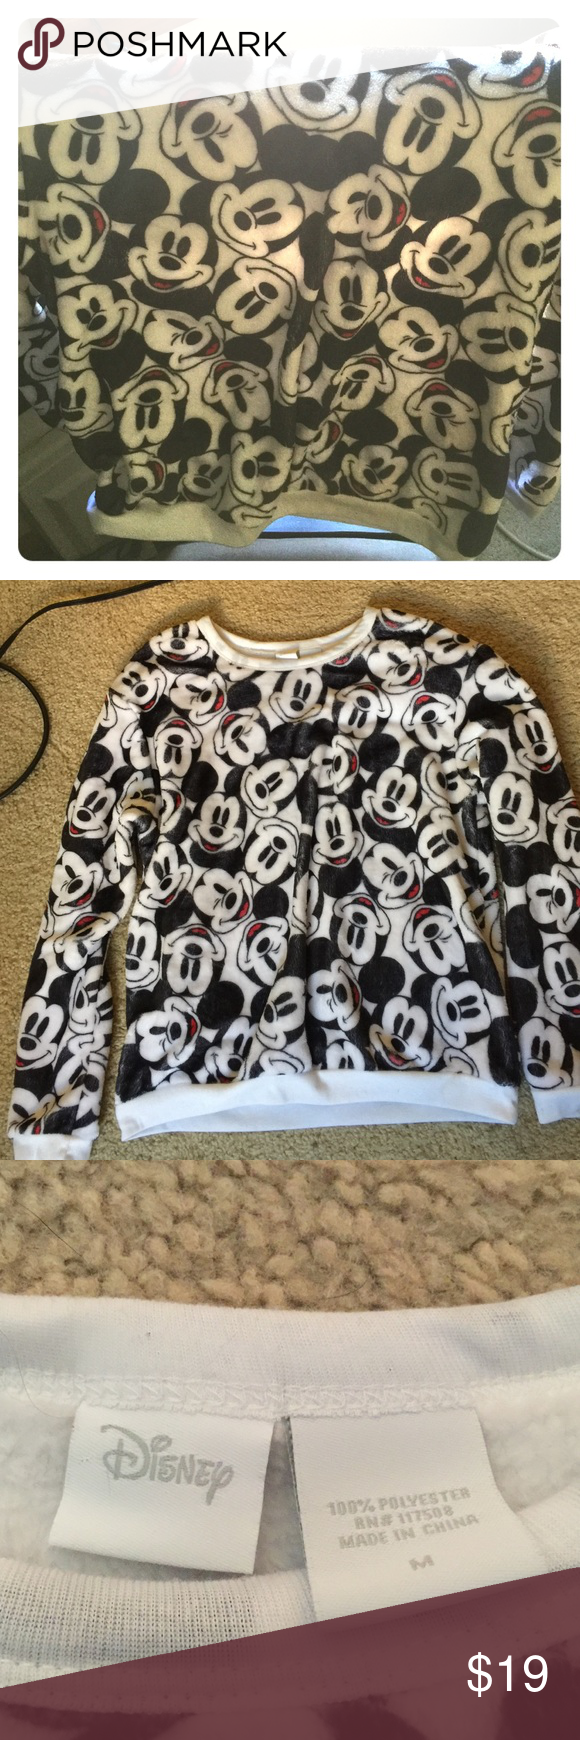 Fuzzy Mickey Mouse Sweater Brand new without tags. NEVER worn!! The sweater is completely fuzzy and super comfortable.Open to negotiate on price. Disney Sweaters Crew & Scoop Necks